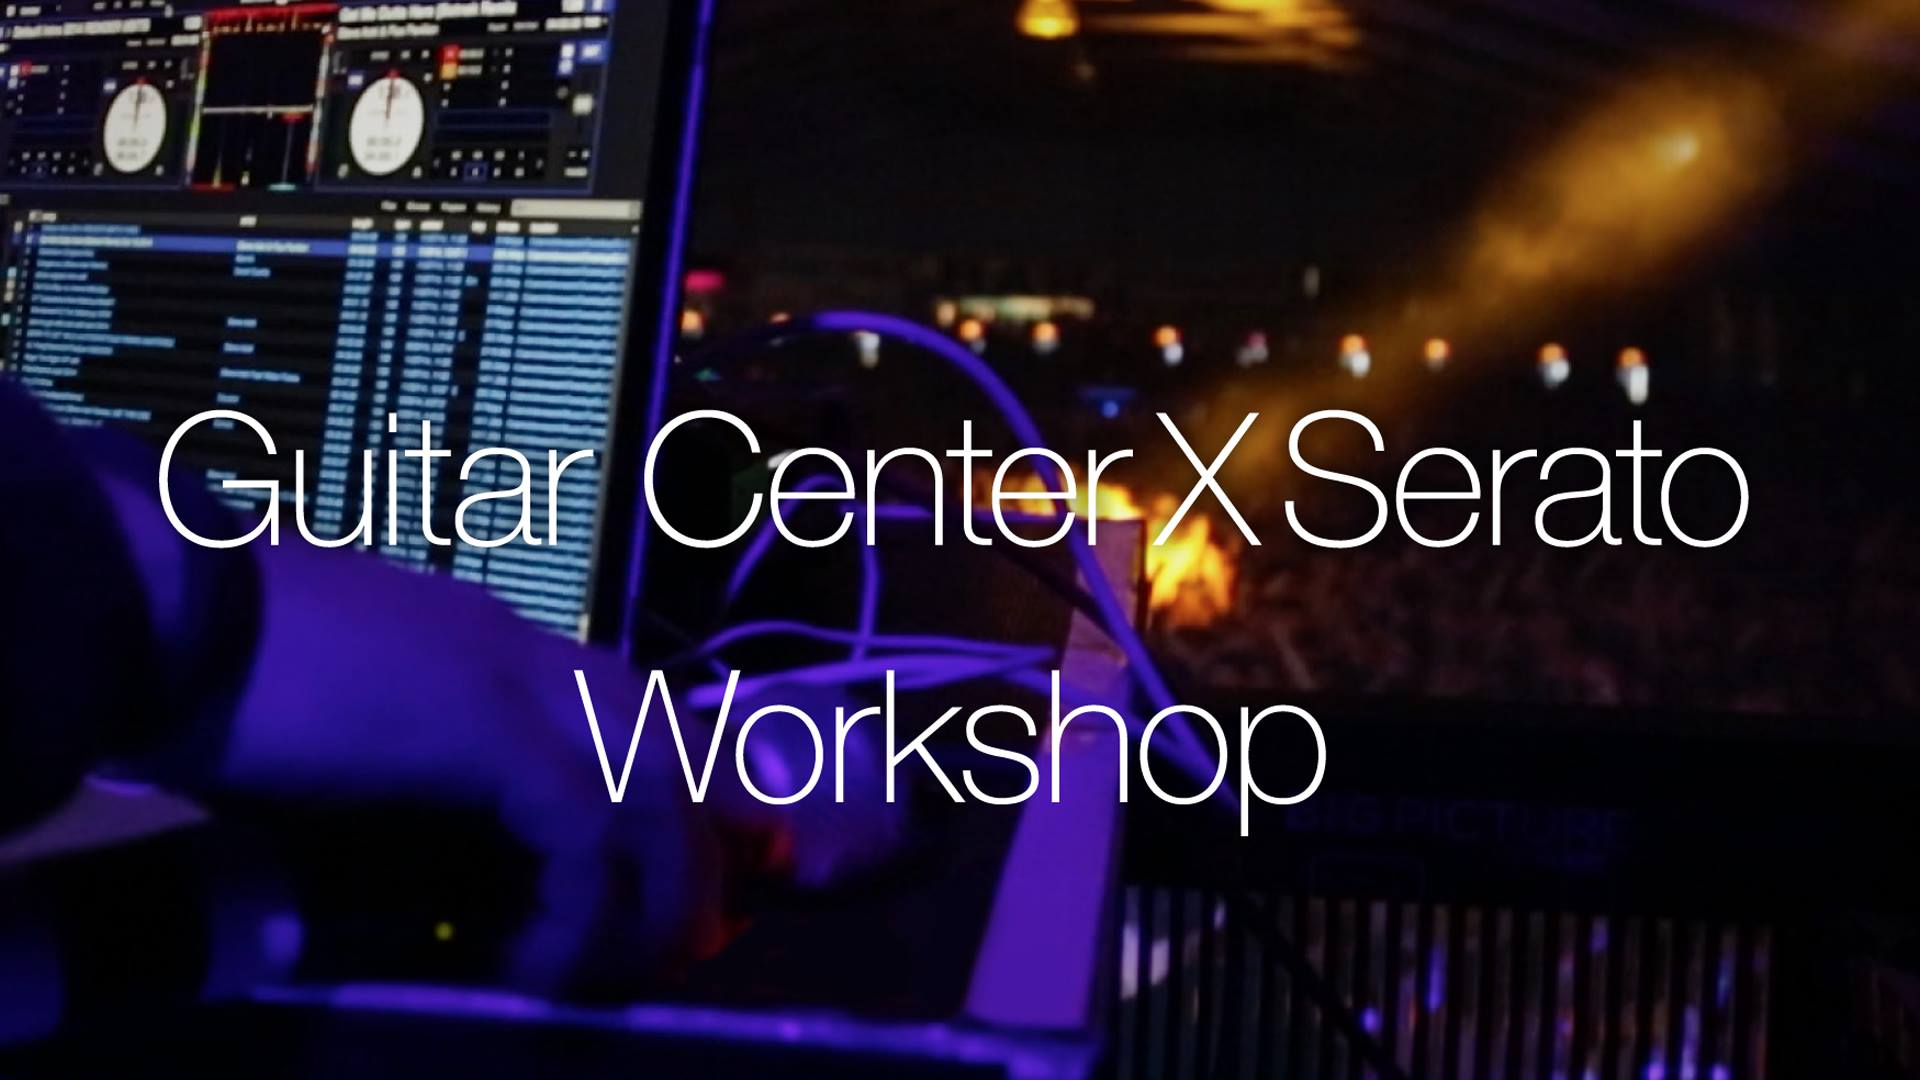 friday 11 6 15 guitar center x serato la workshop w dj babu beatjunkies. Black Bedroom Furniture Sets. Home Design Ideas